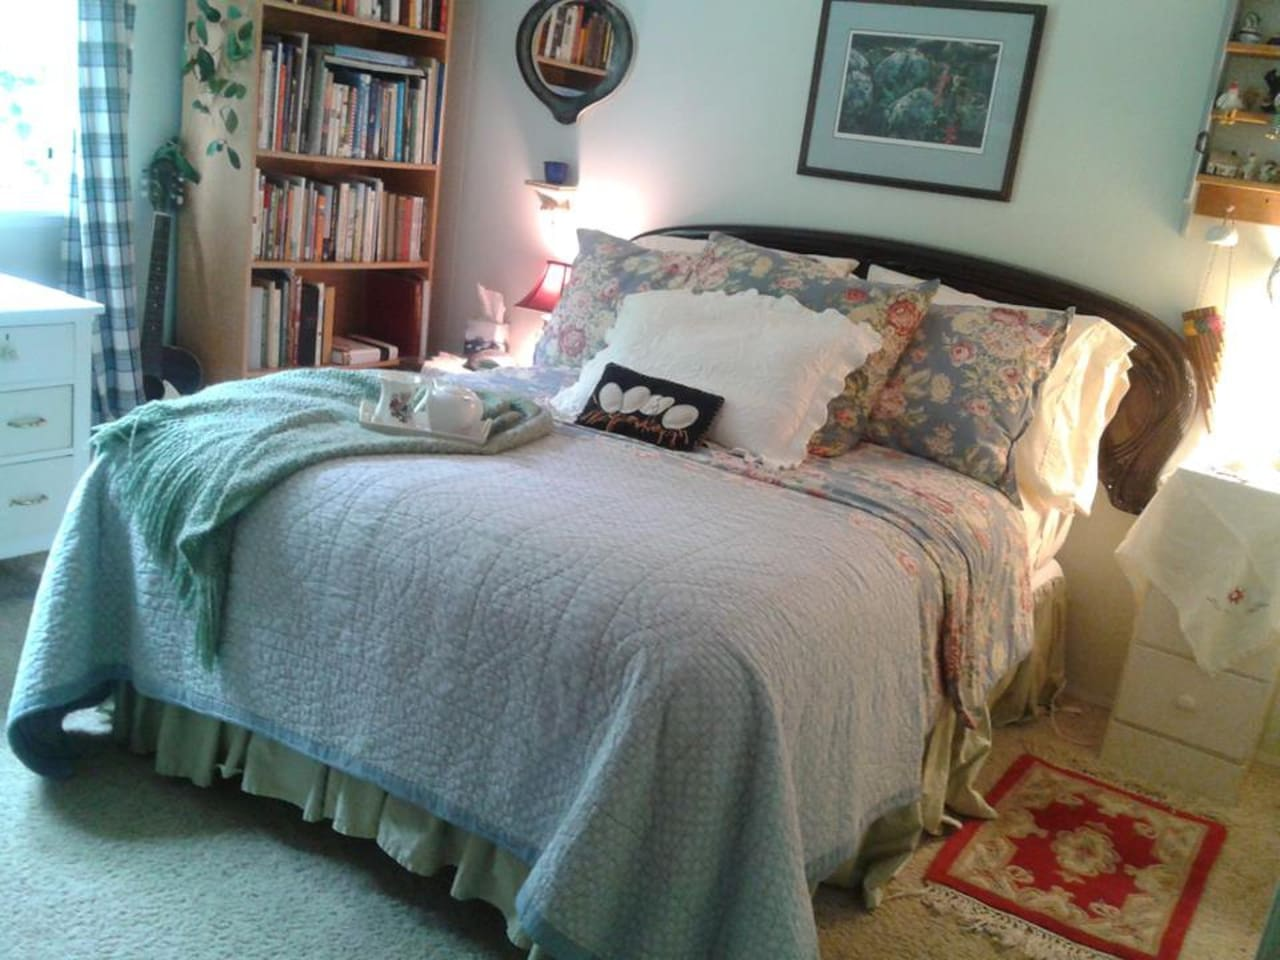 A comfy bed and a clean quiet room awaits you at Pear Tree Farm